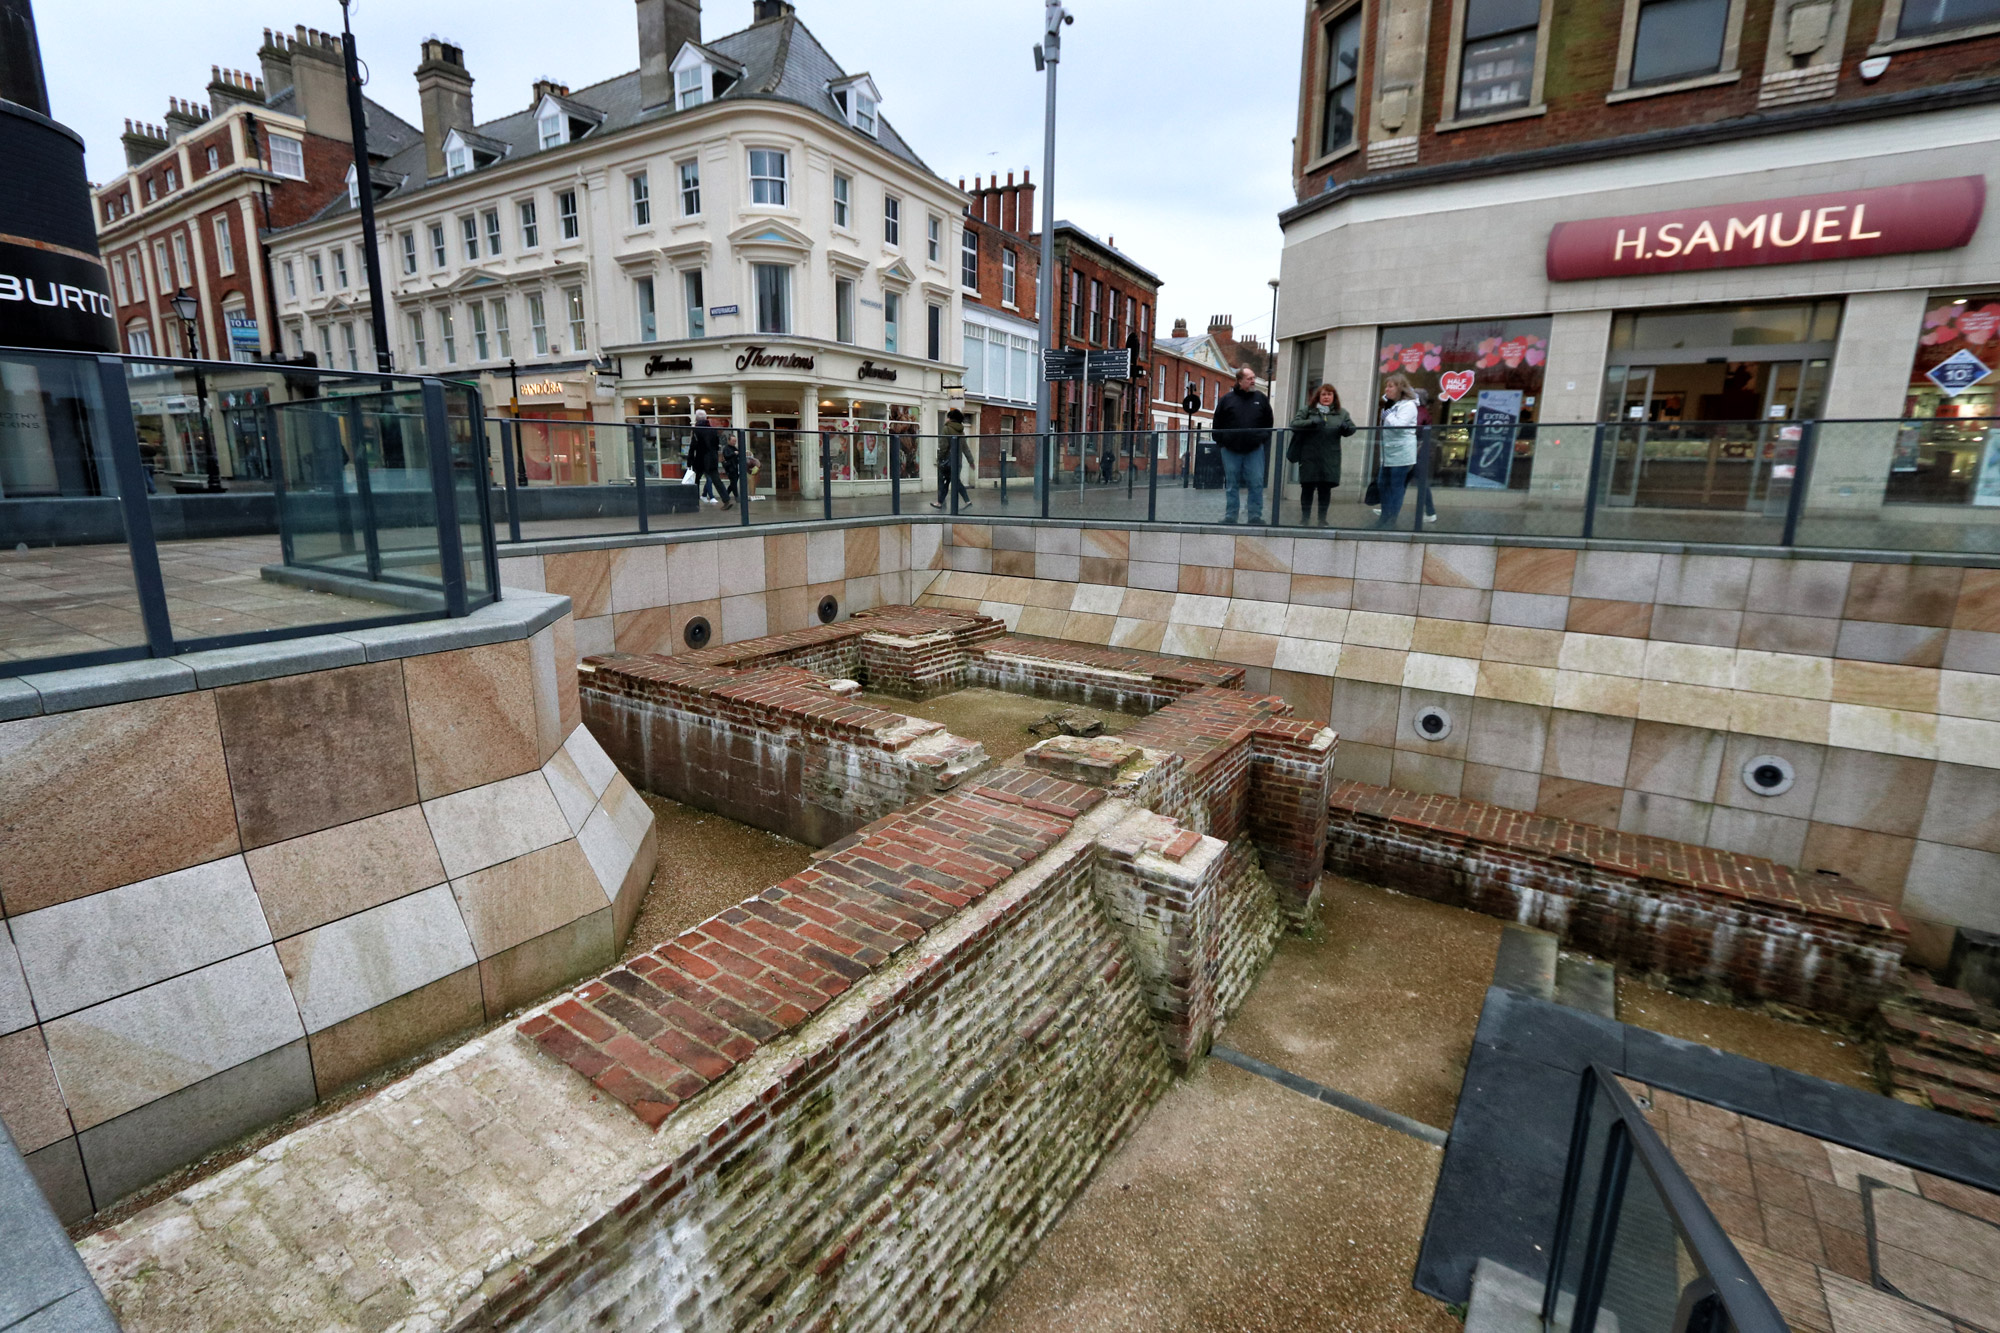 Stedentrip Hull - Beverley Gate